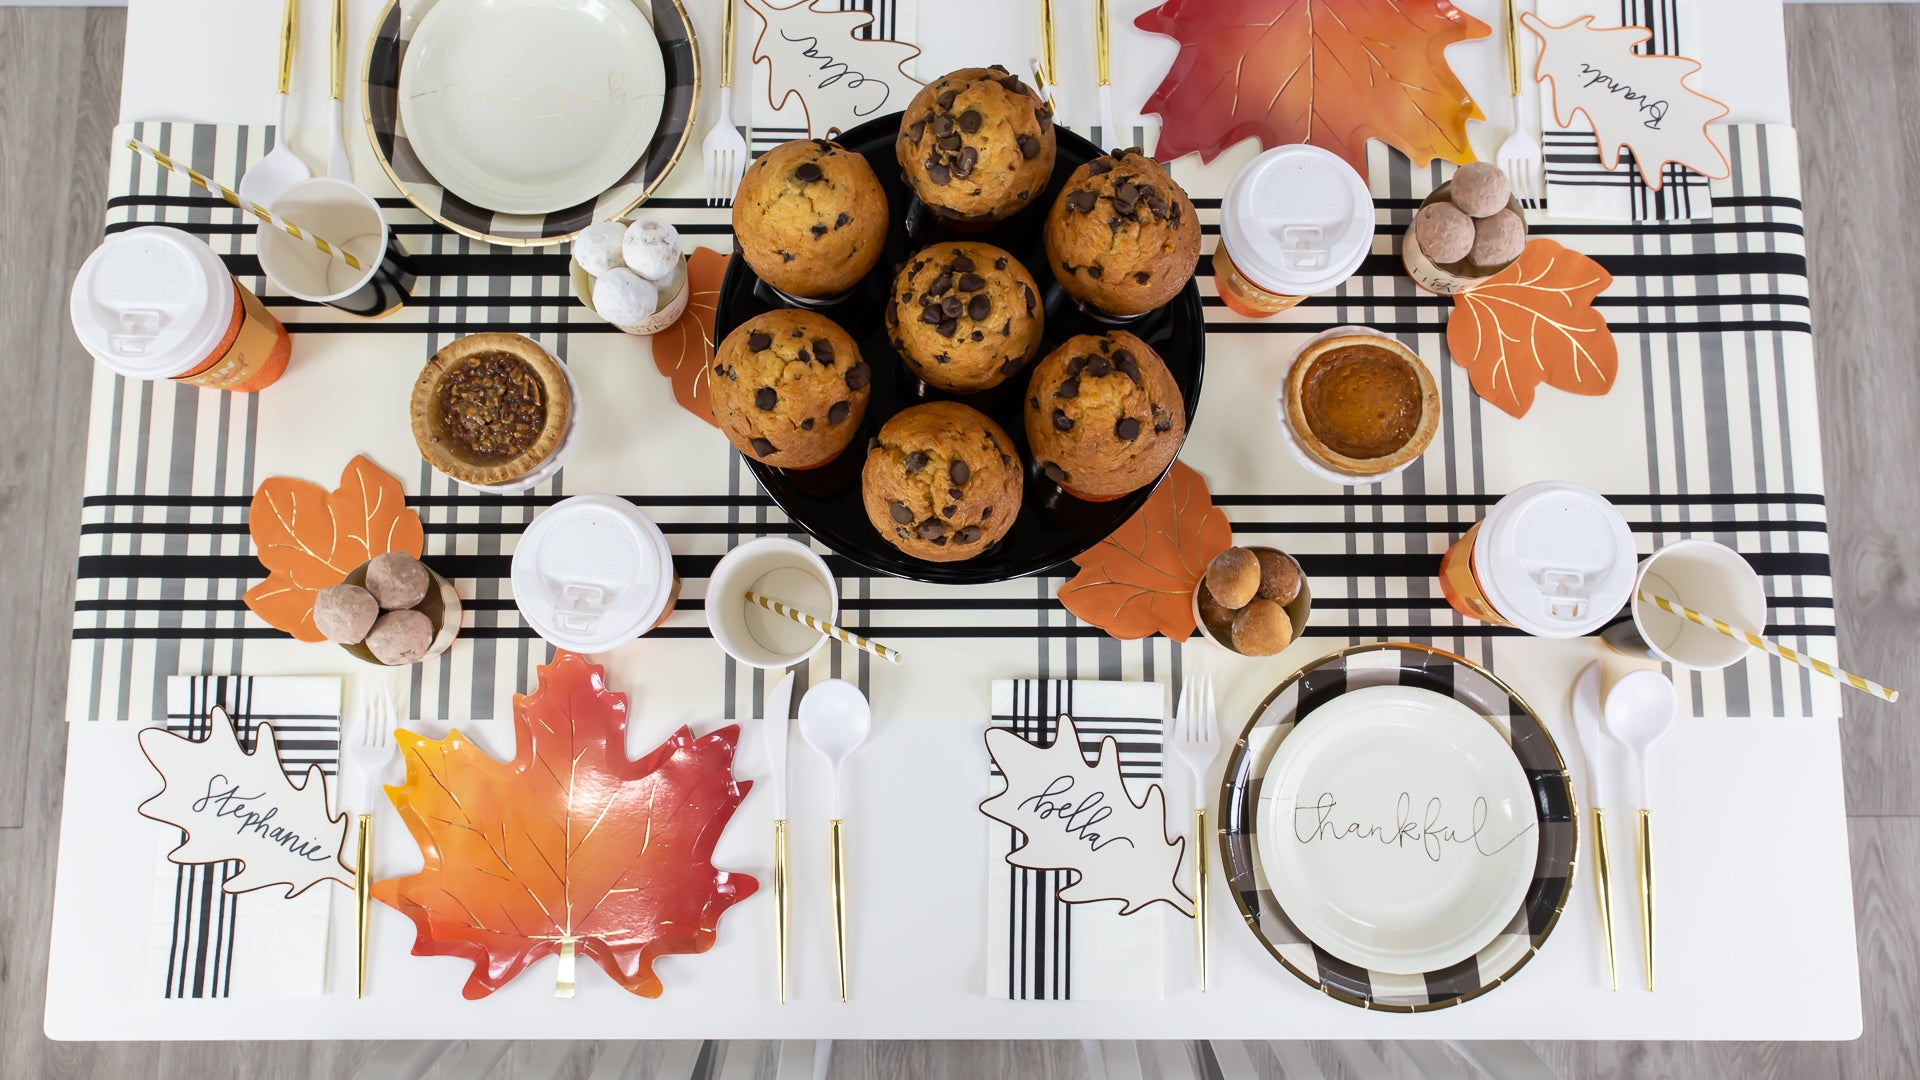 Stunning Gingham Fall Farmhouse Decorating Ideas for Brunch | The Party Darling